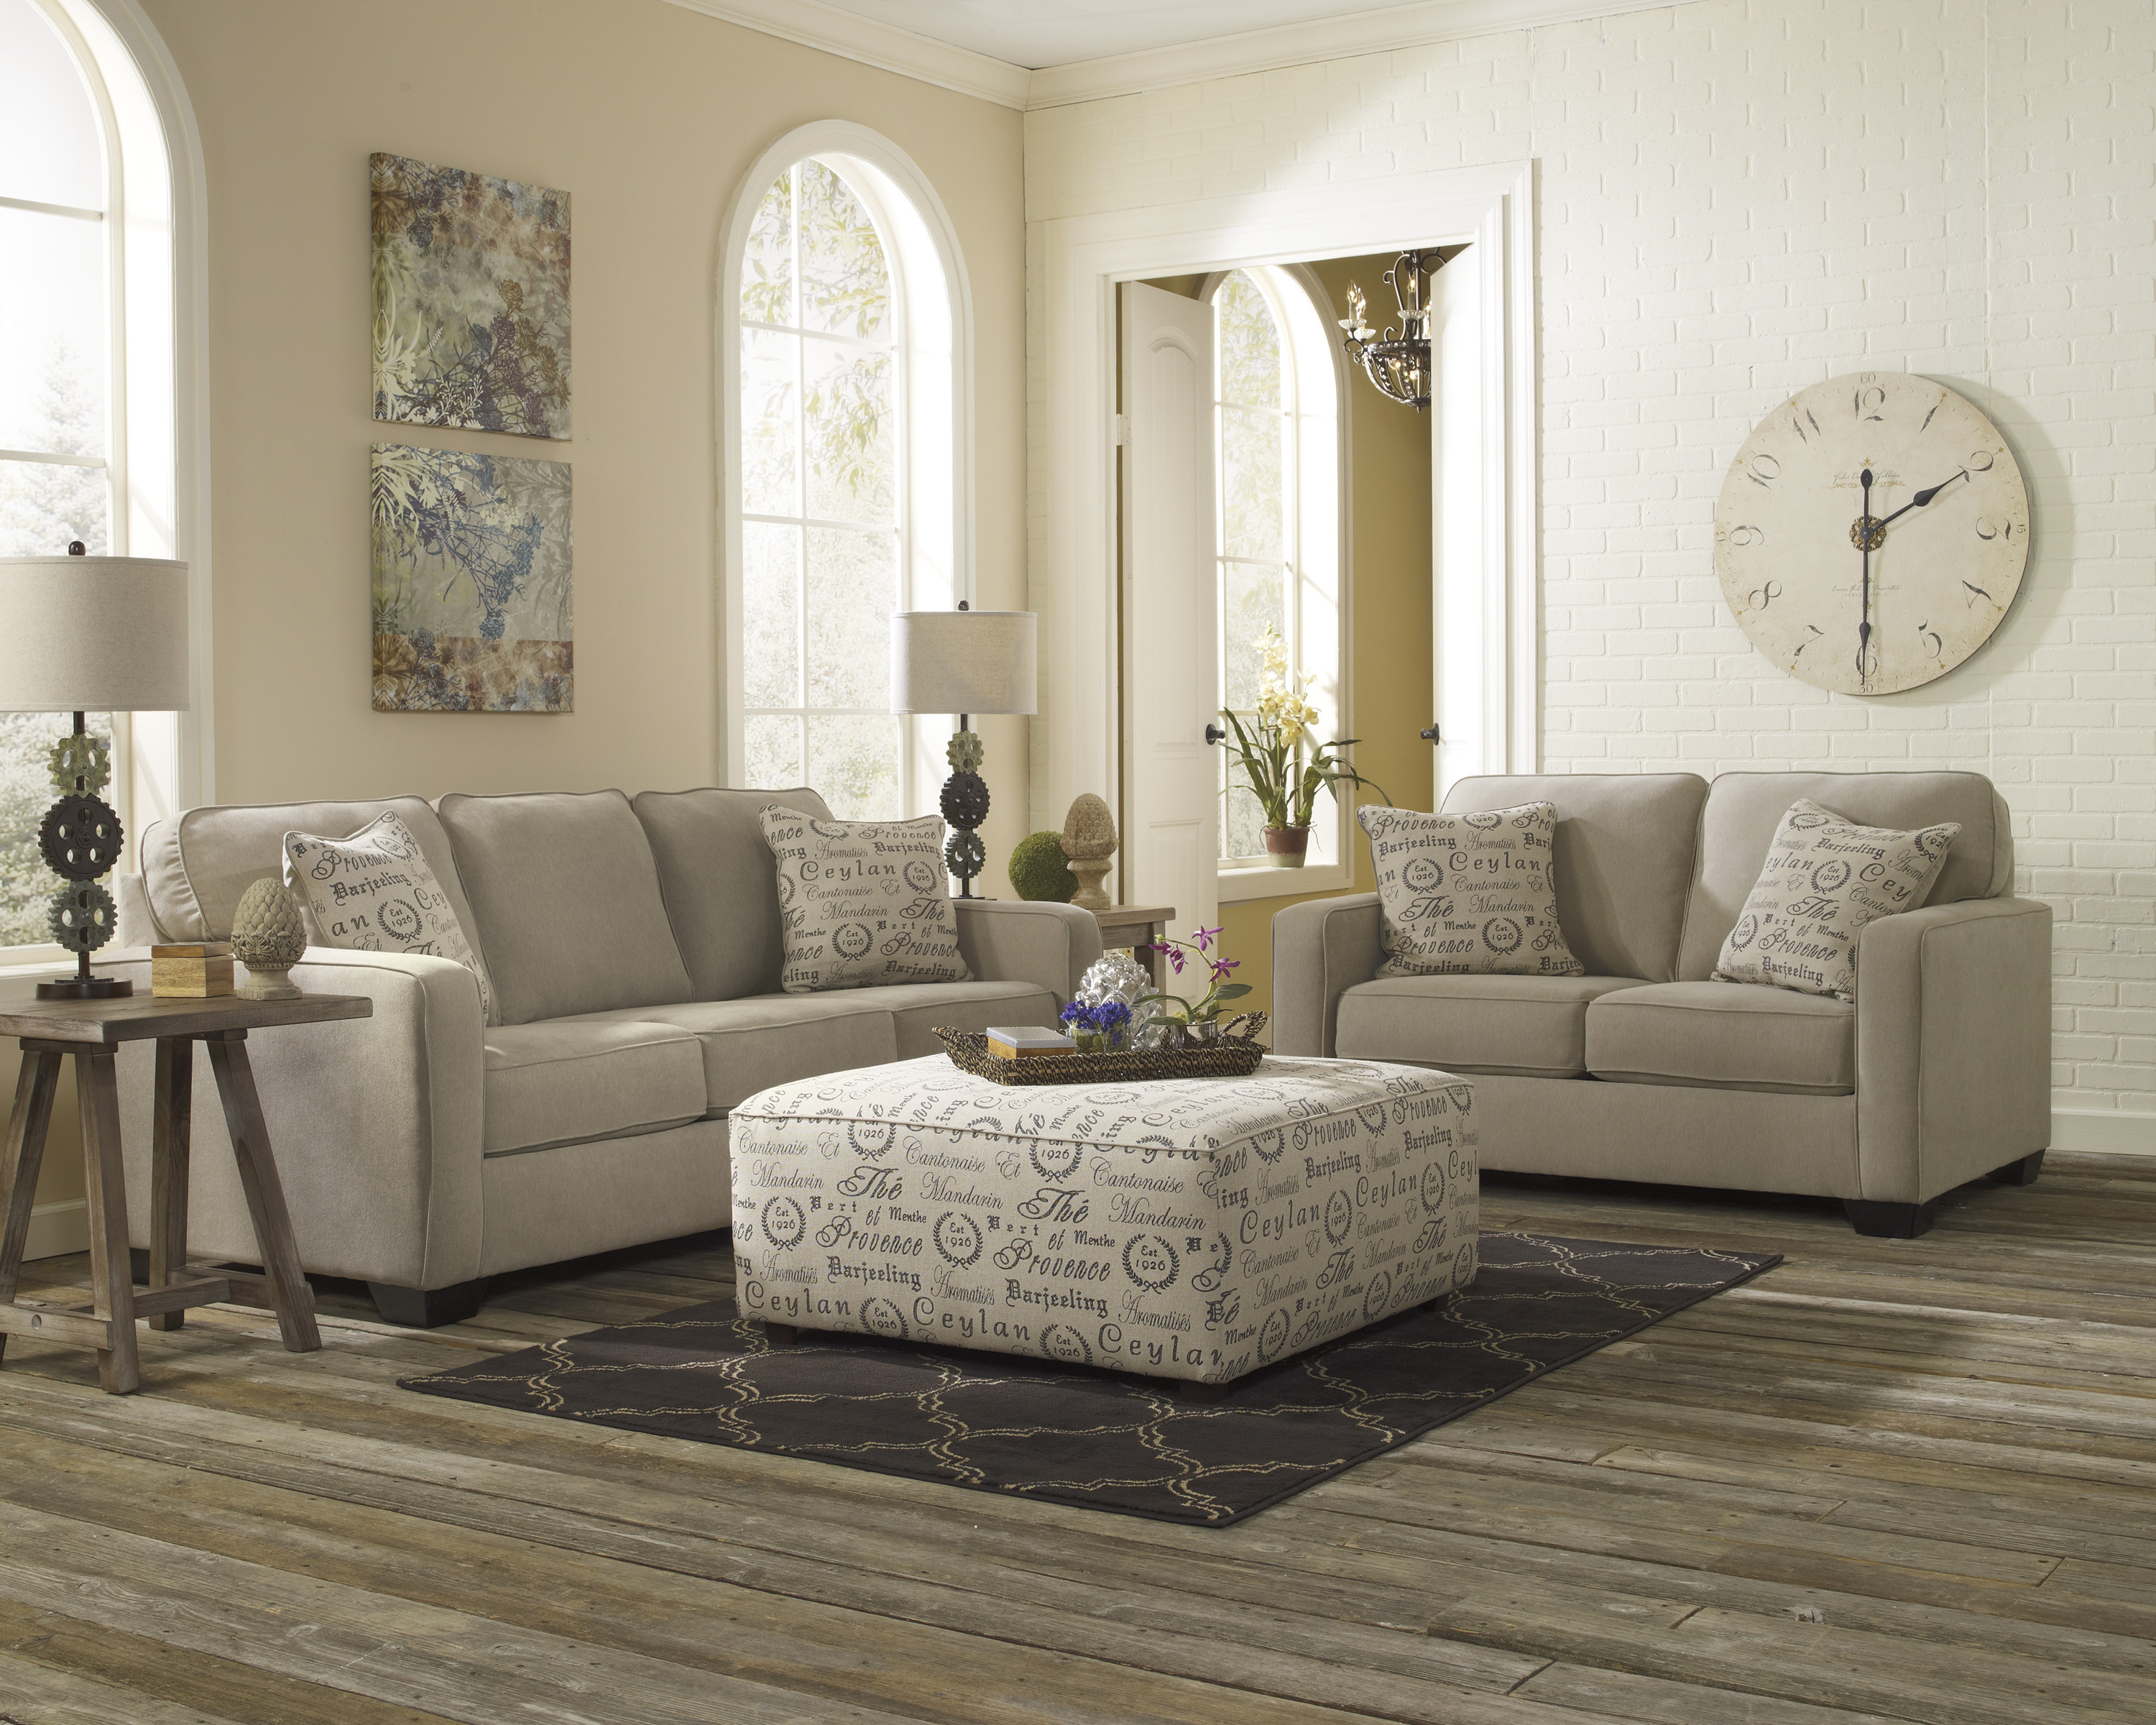 Best ideas about Family Room Chairs . Save or Pin ASHLEY FURNITURE FABRIC SOFA SETS Fabric Sofas AS Now.